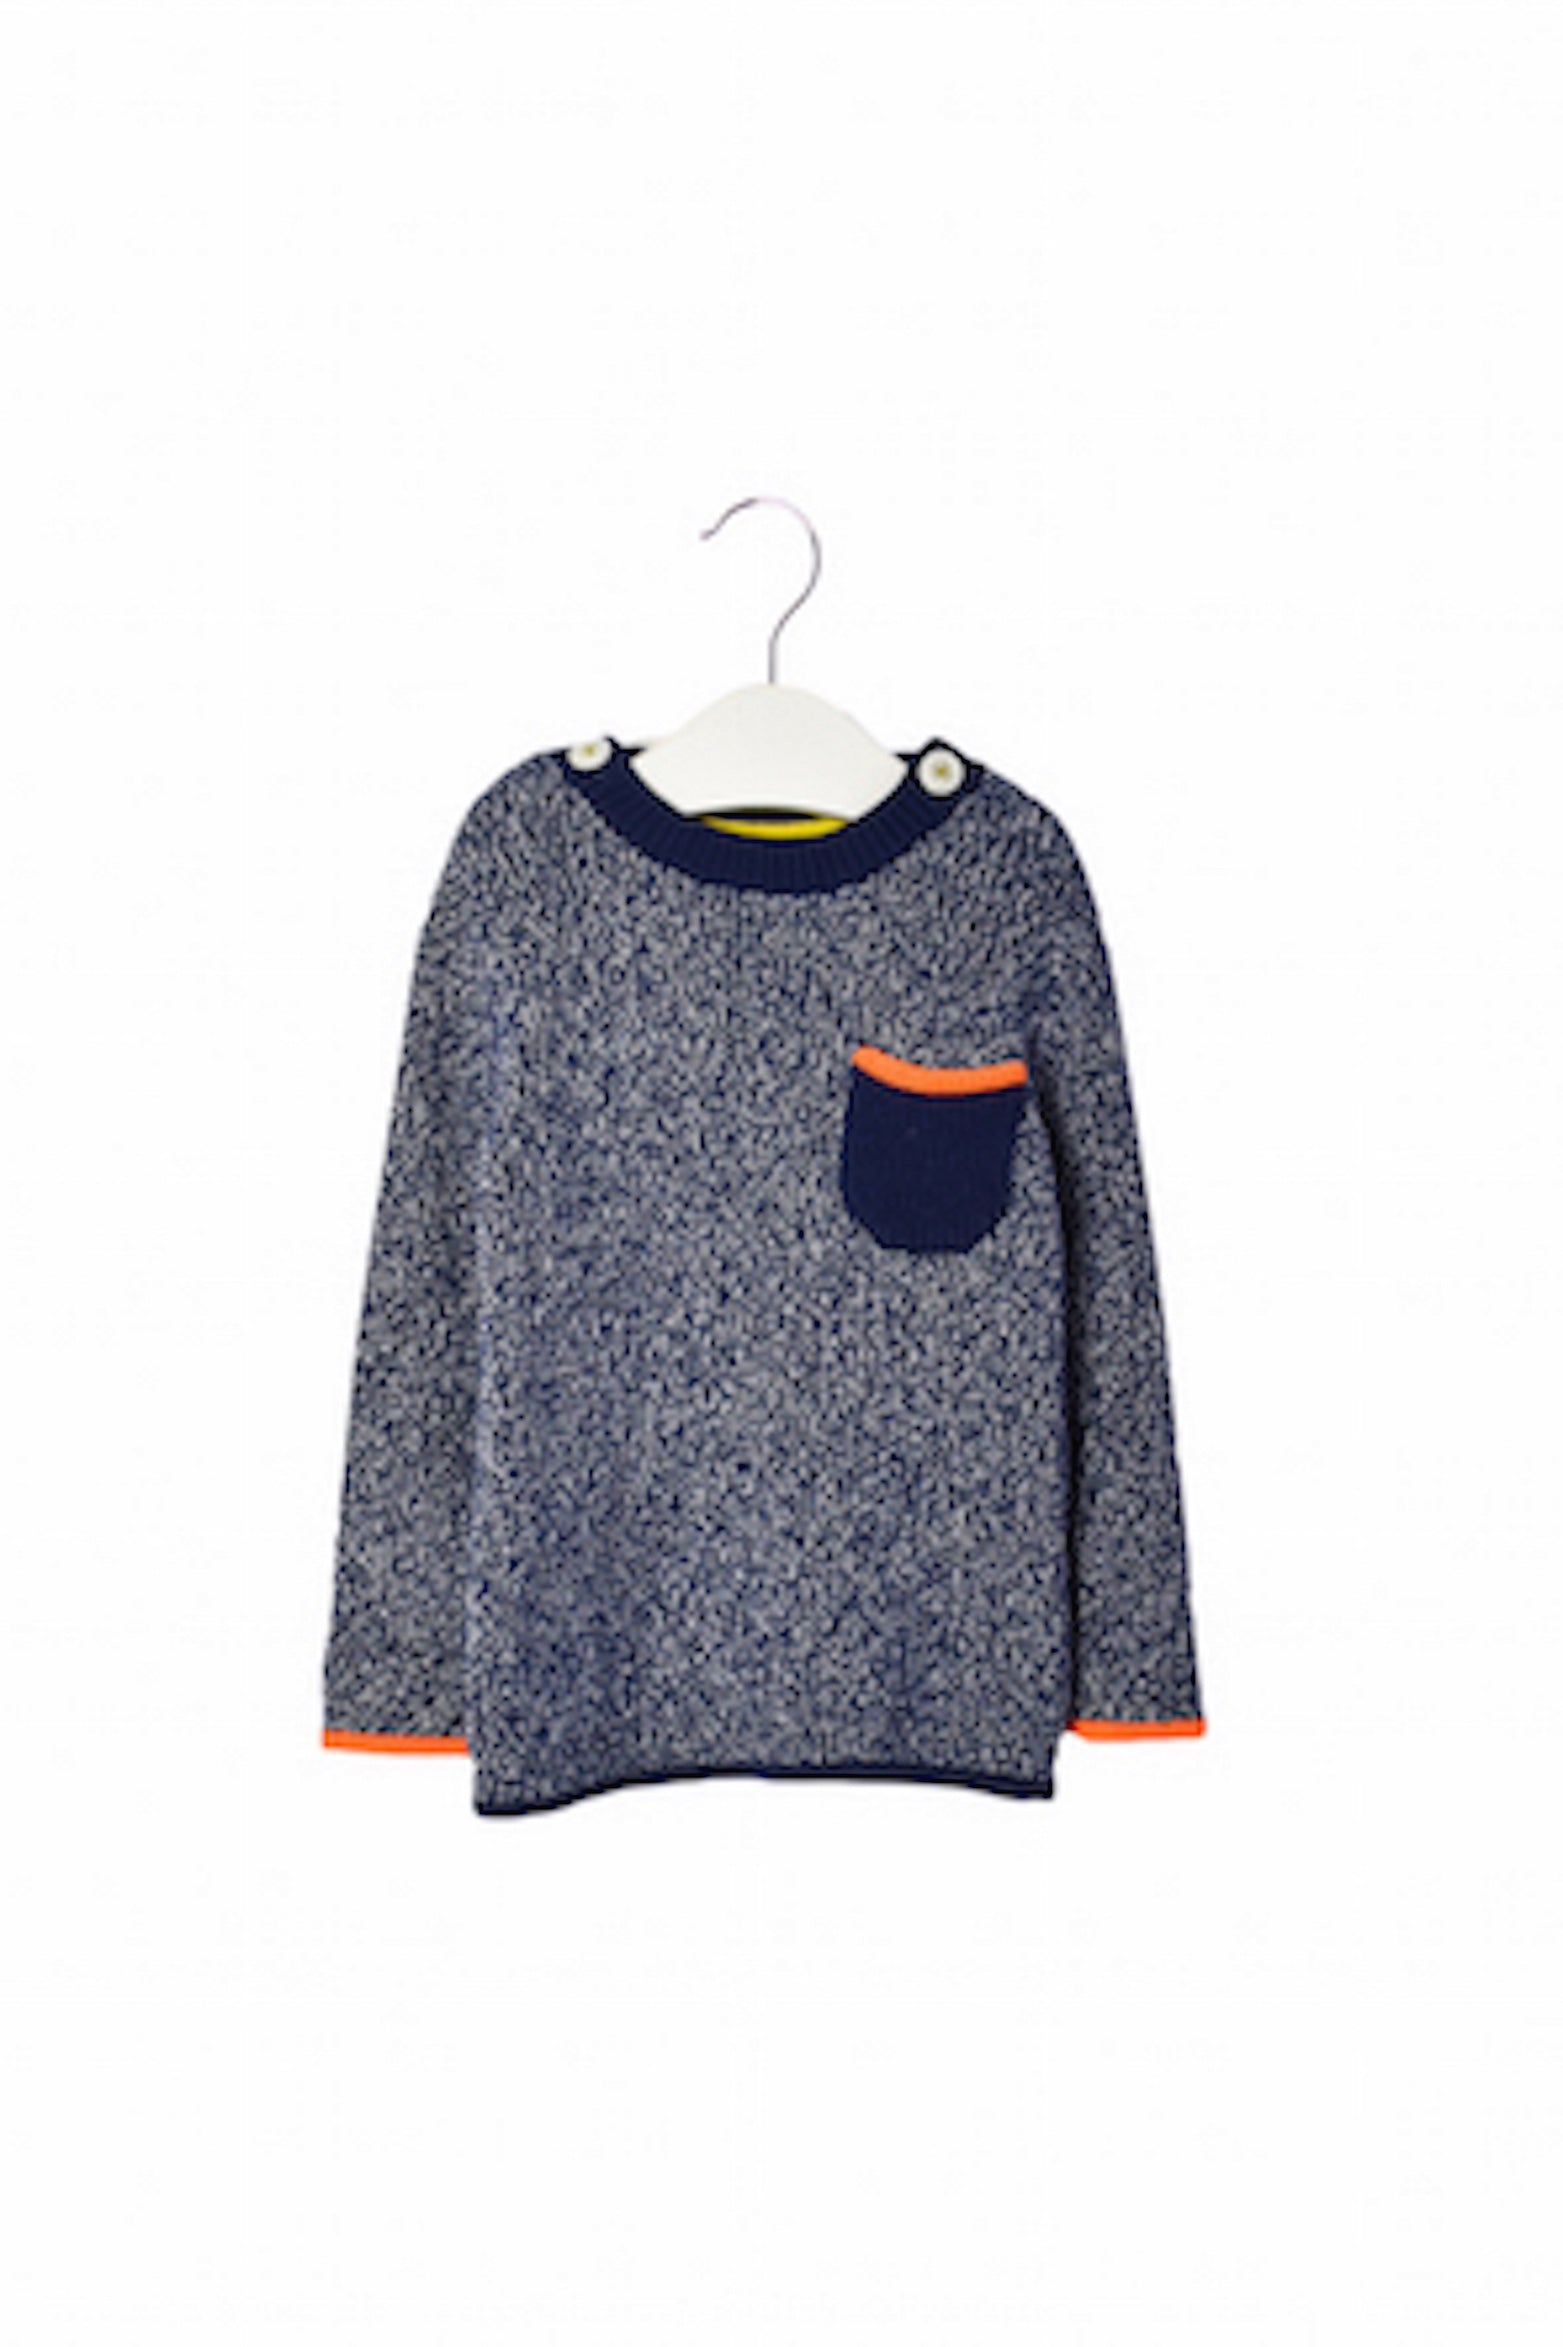 10007102 Boden Baby ~ Sweater 12-18M at Retykle